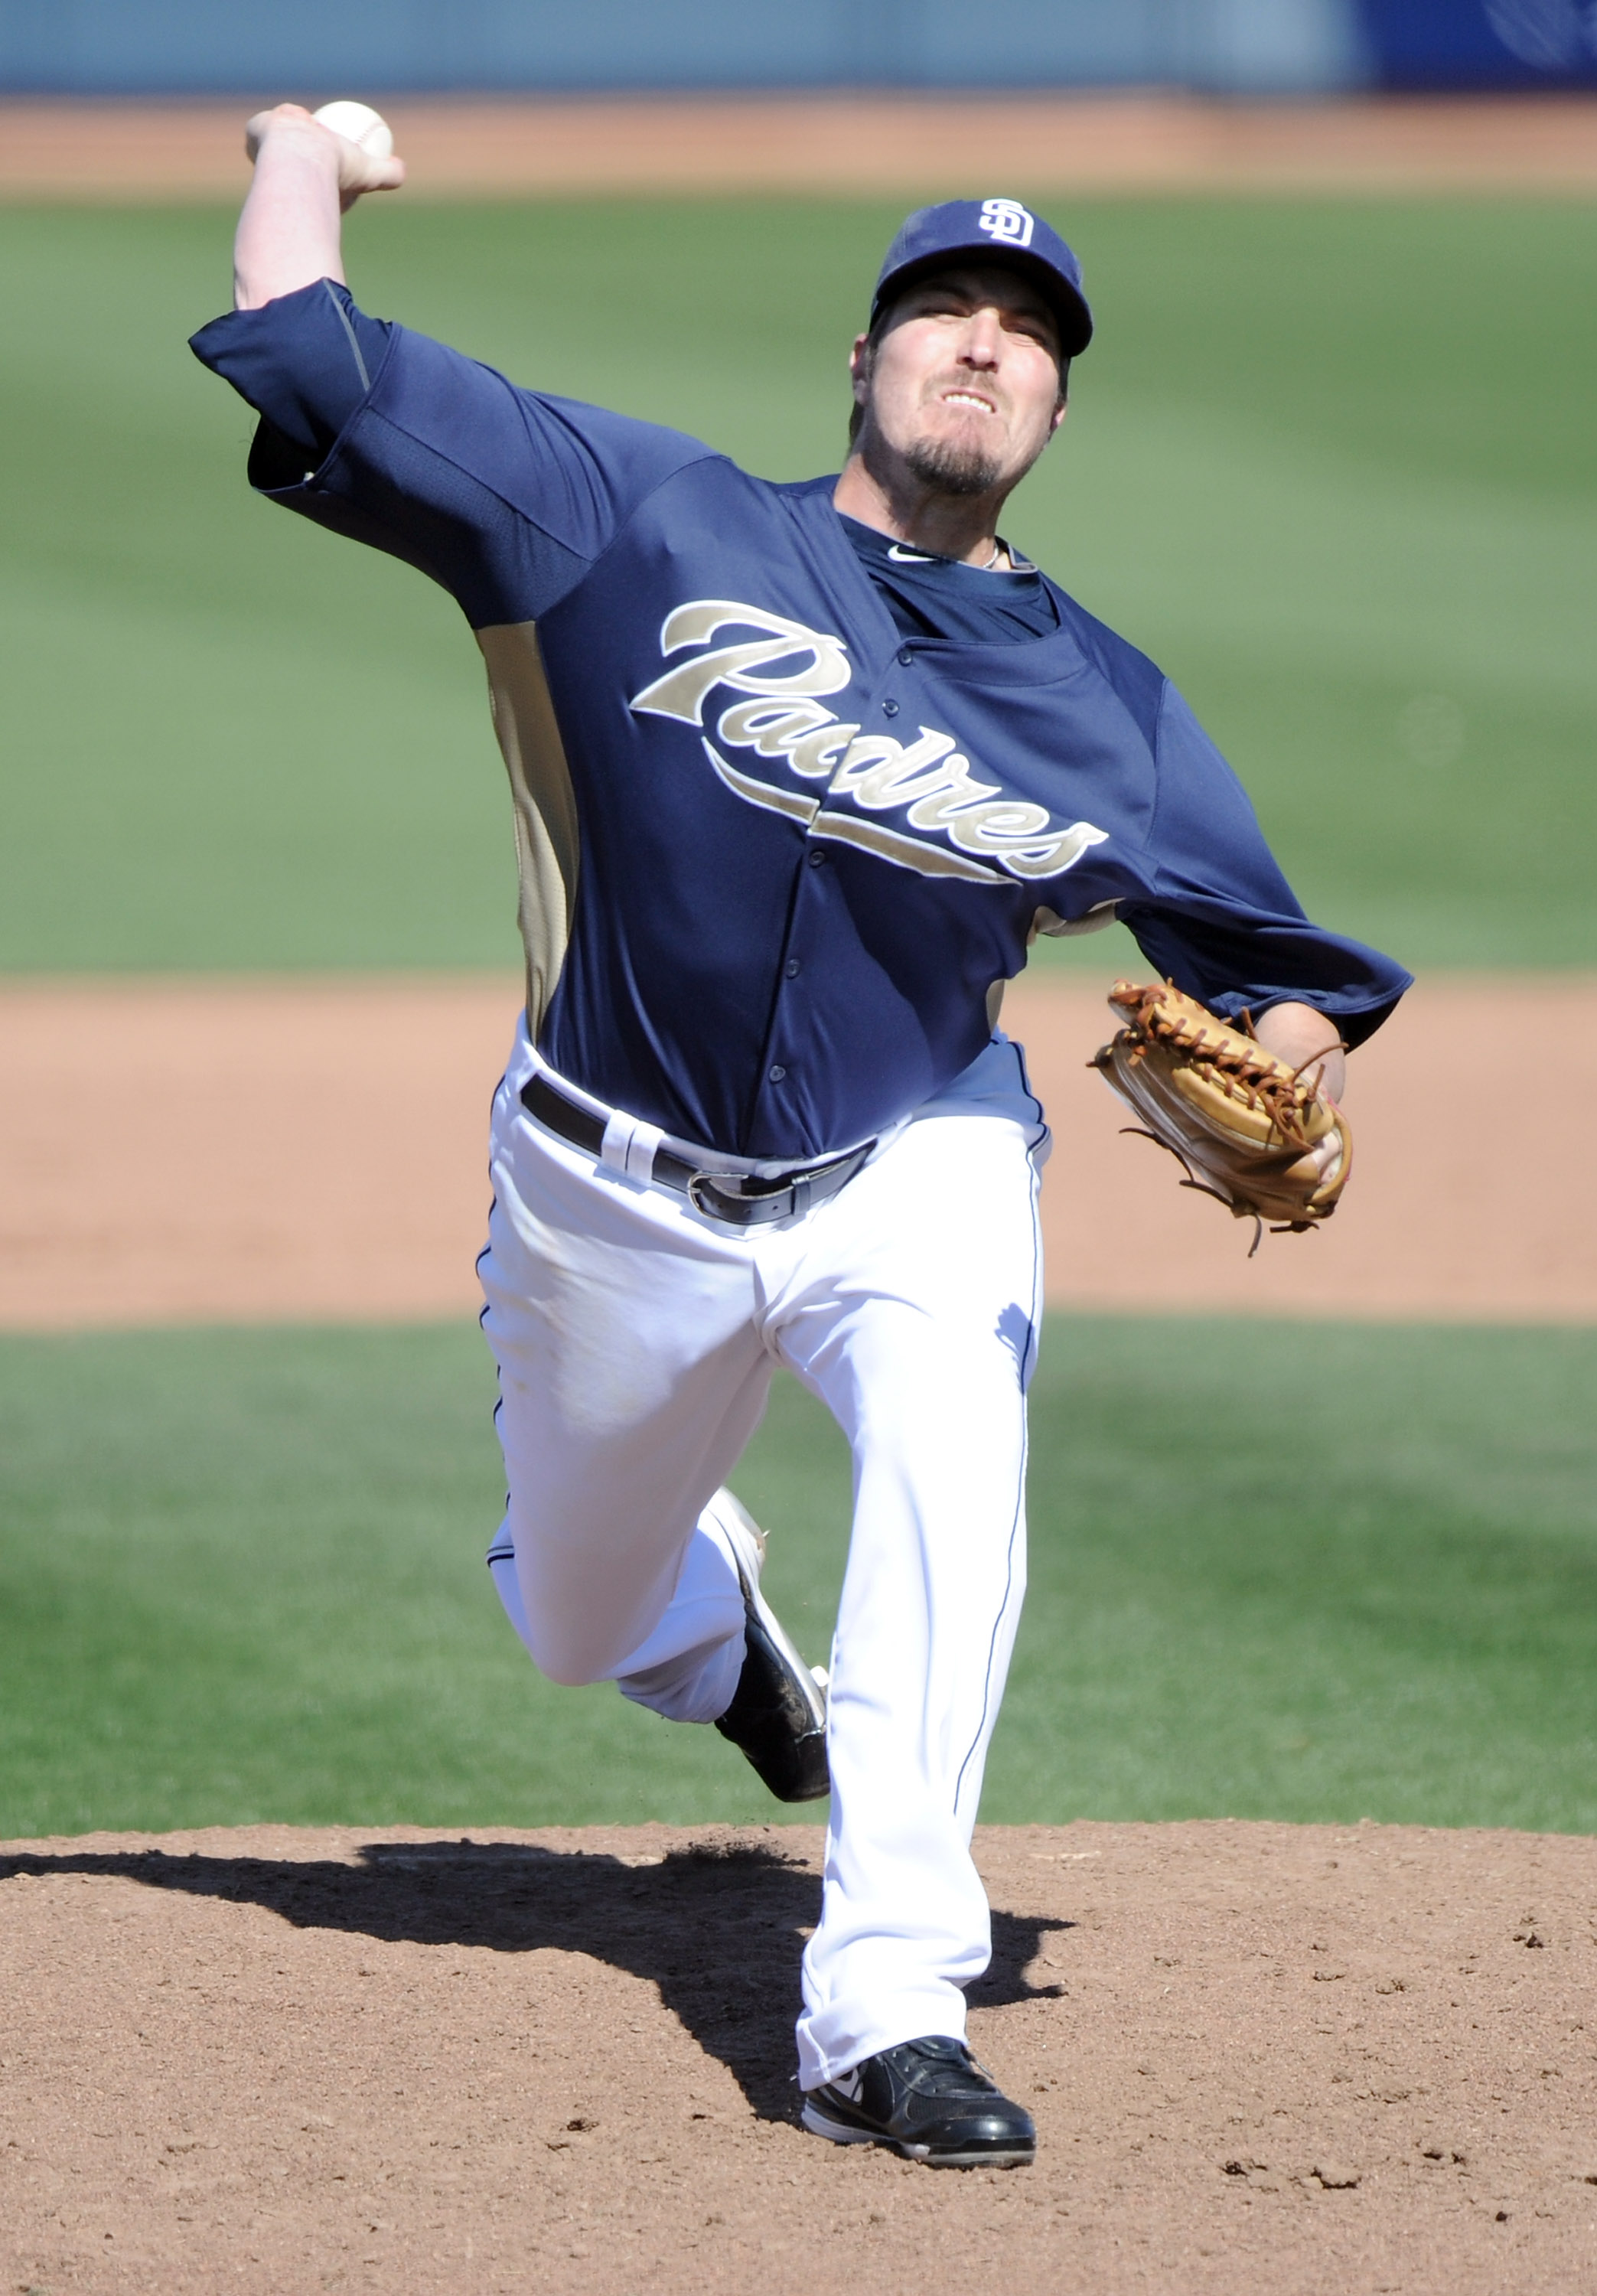 PEORIA, AZ - MARCH 02:  Chad Qualls #52 of the  San Diego Padres pitches against the Colorado Rockies during spring training at Peoria Stadium on March 2, 2011 in Peoria, Arizona.  (Photo by Harry How/Getty Images)